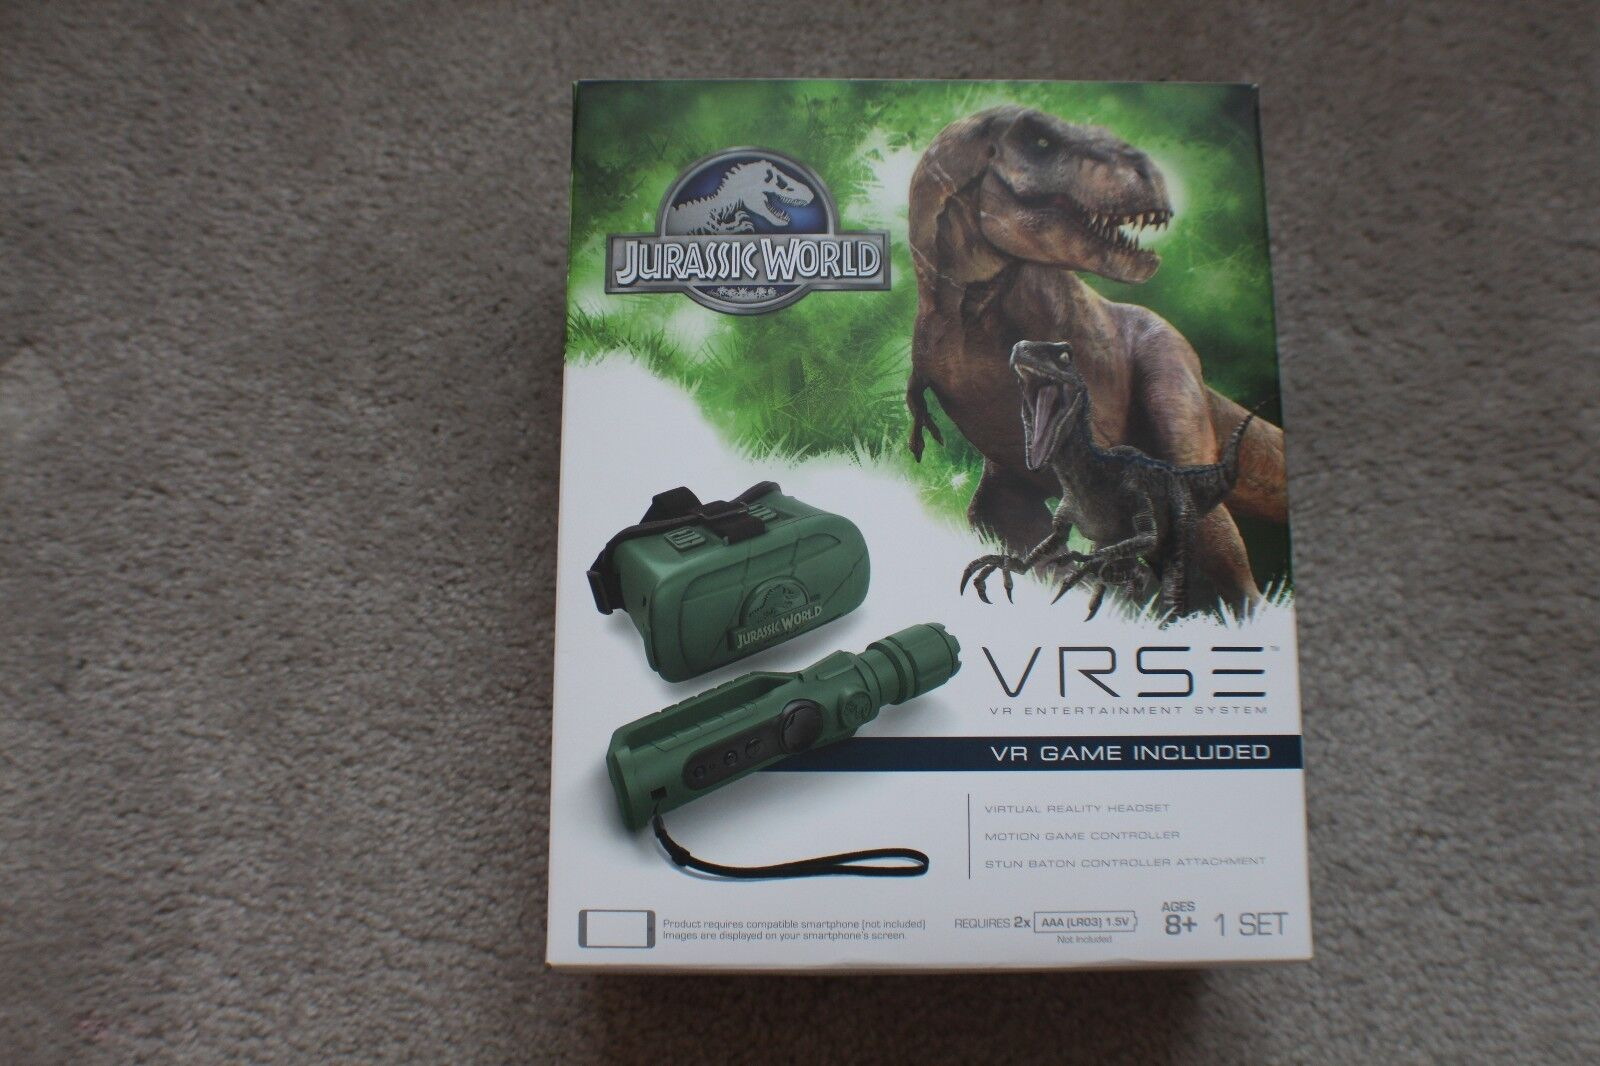 Vrse jurassic park - entertainment - system - free shipping